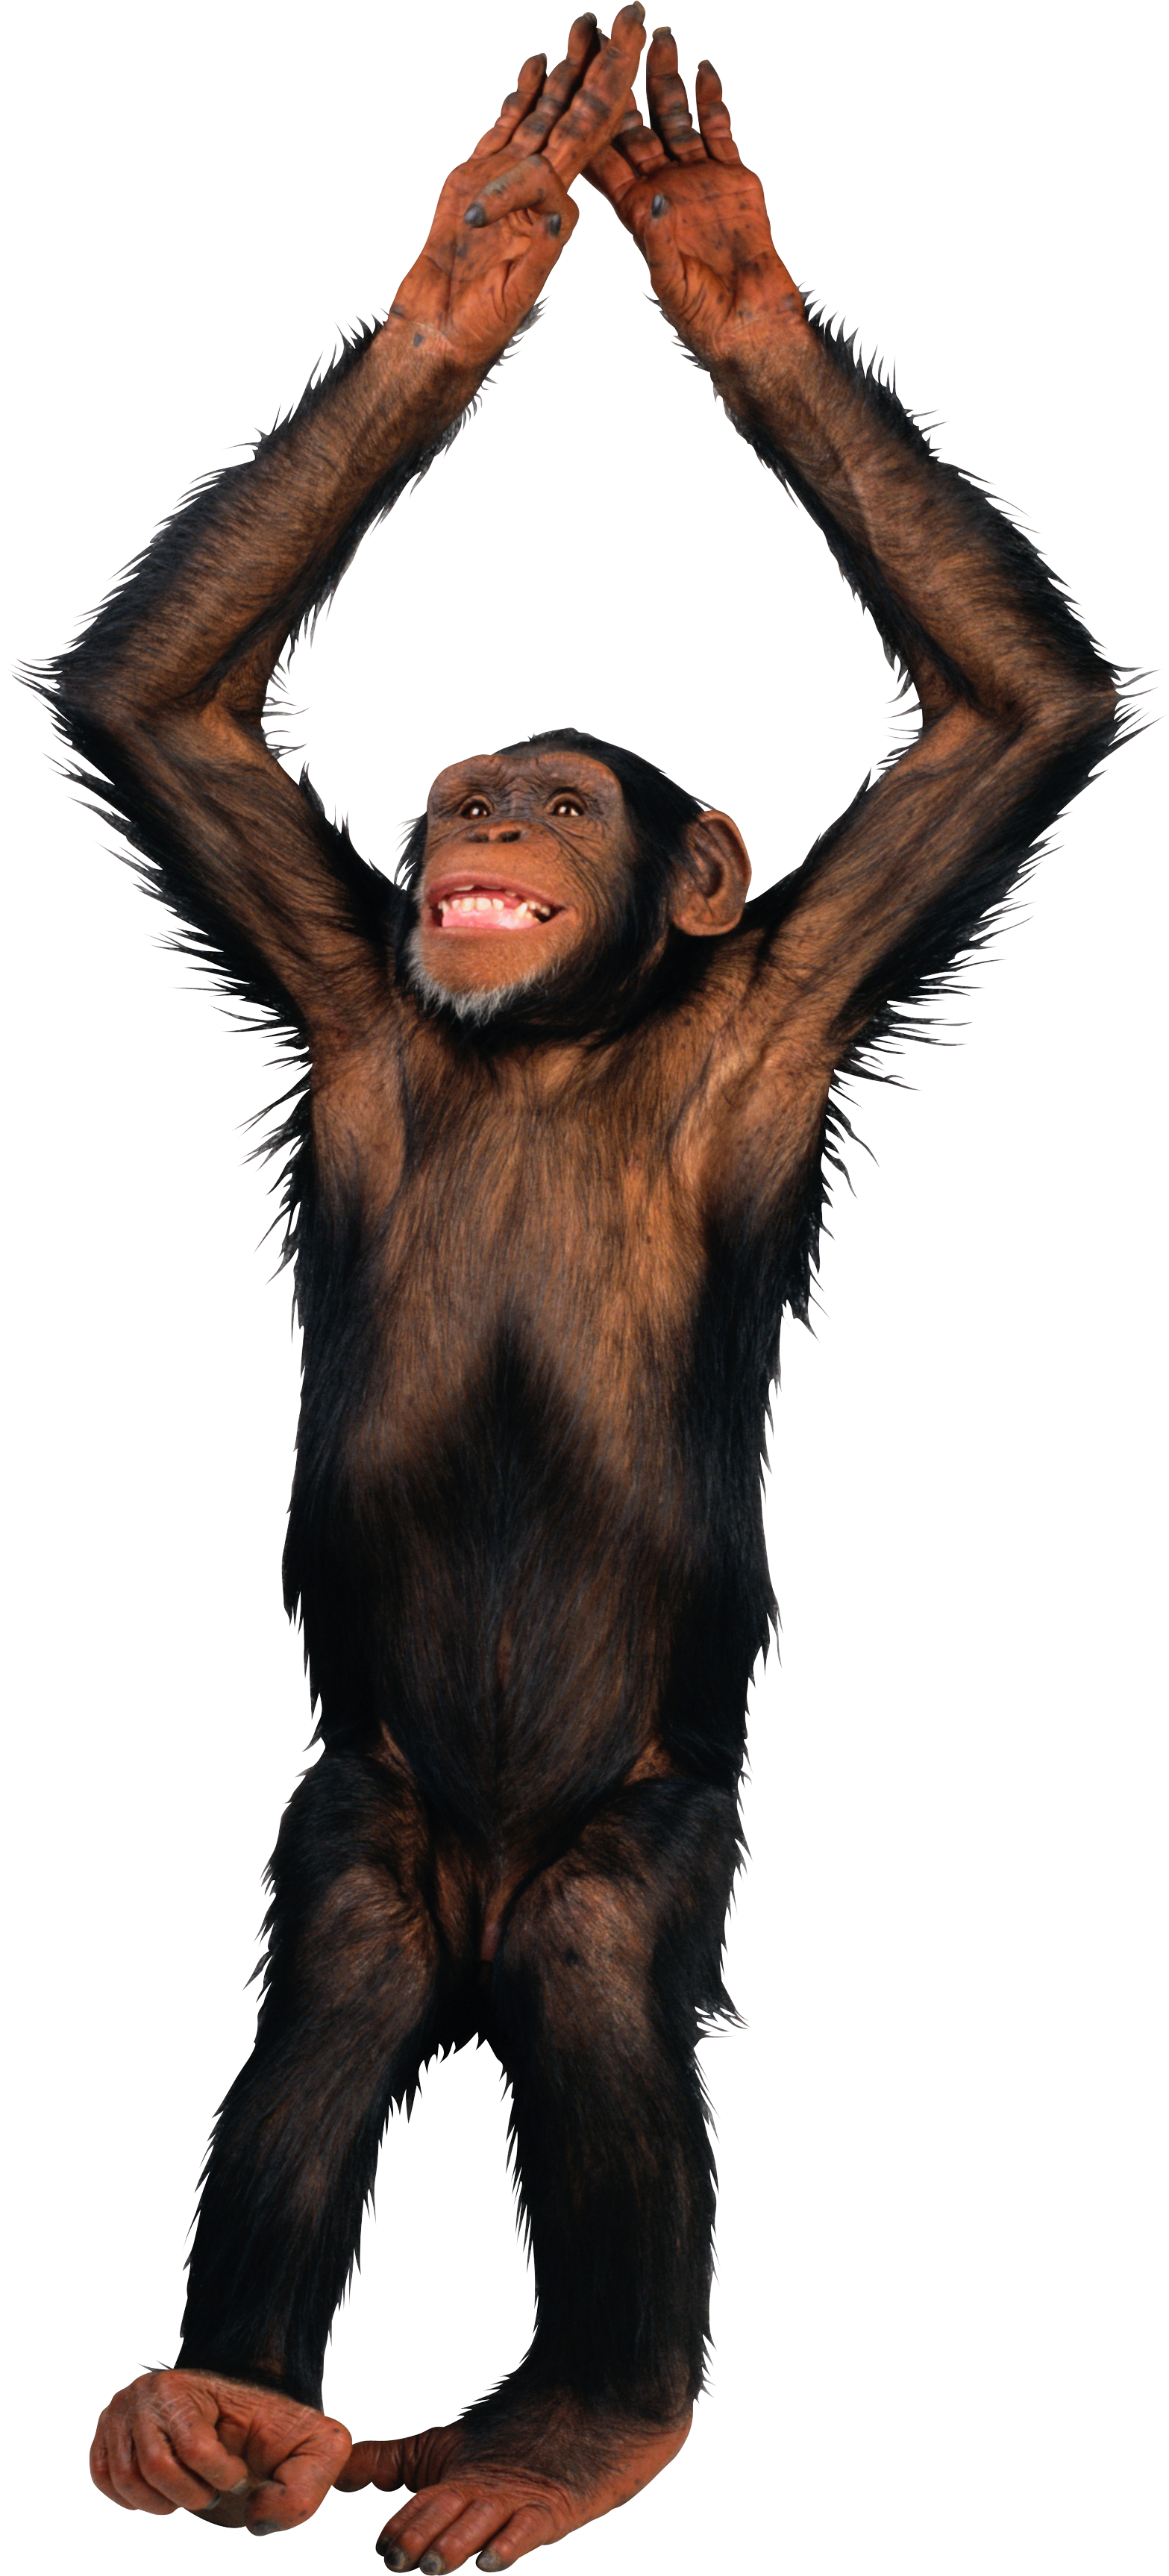 Transparent pinterest and animal. Monkey png images graphic transparent download